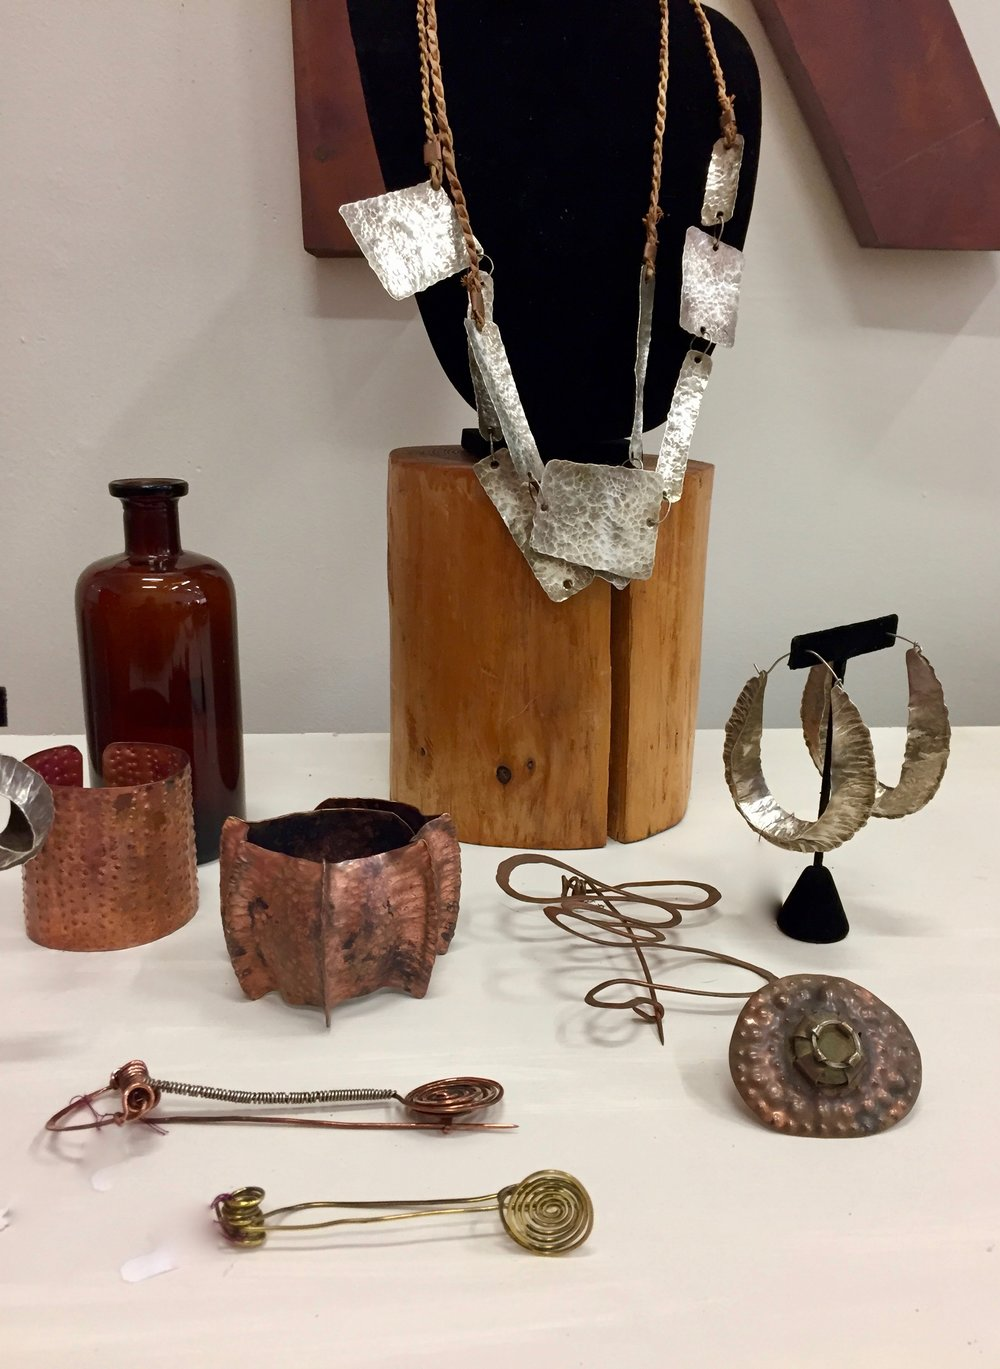 Modern, ethnographic jewelry by David Blakesley including bold, hammered adornments in copper and silver.